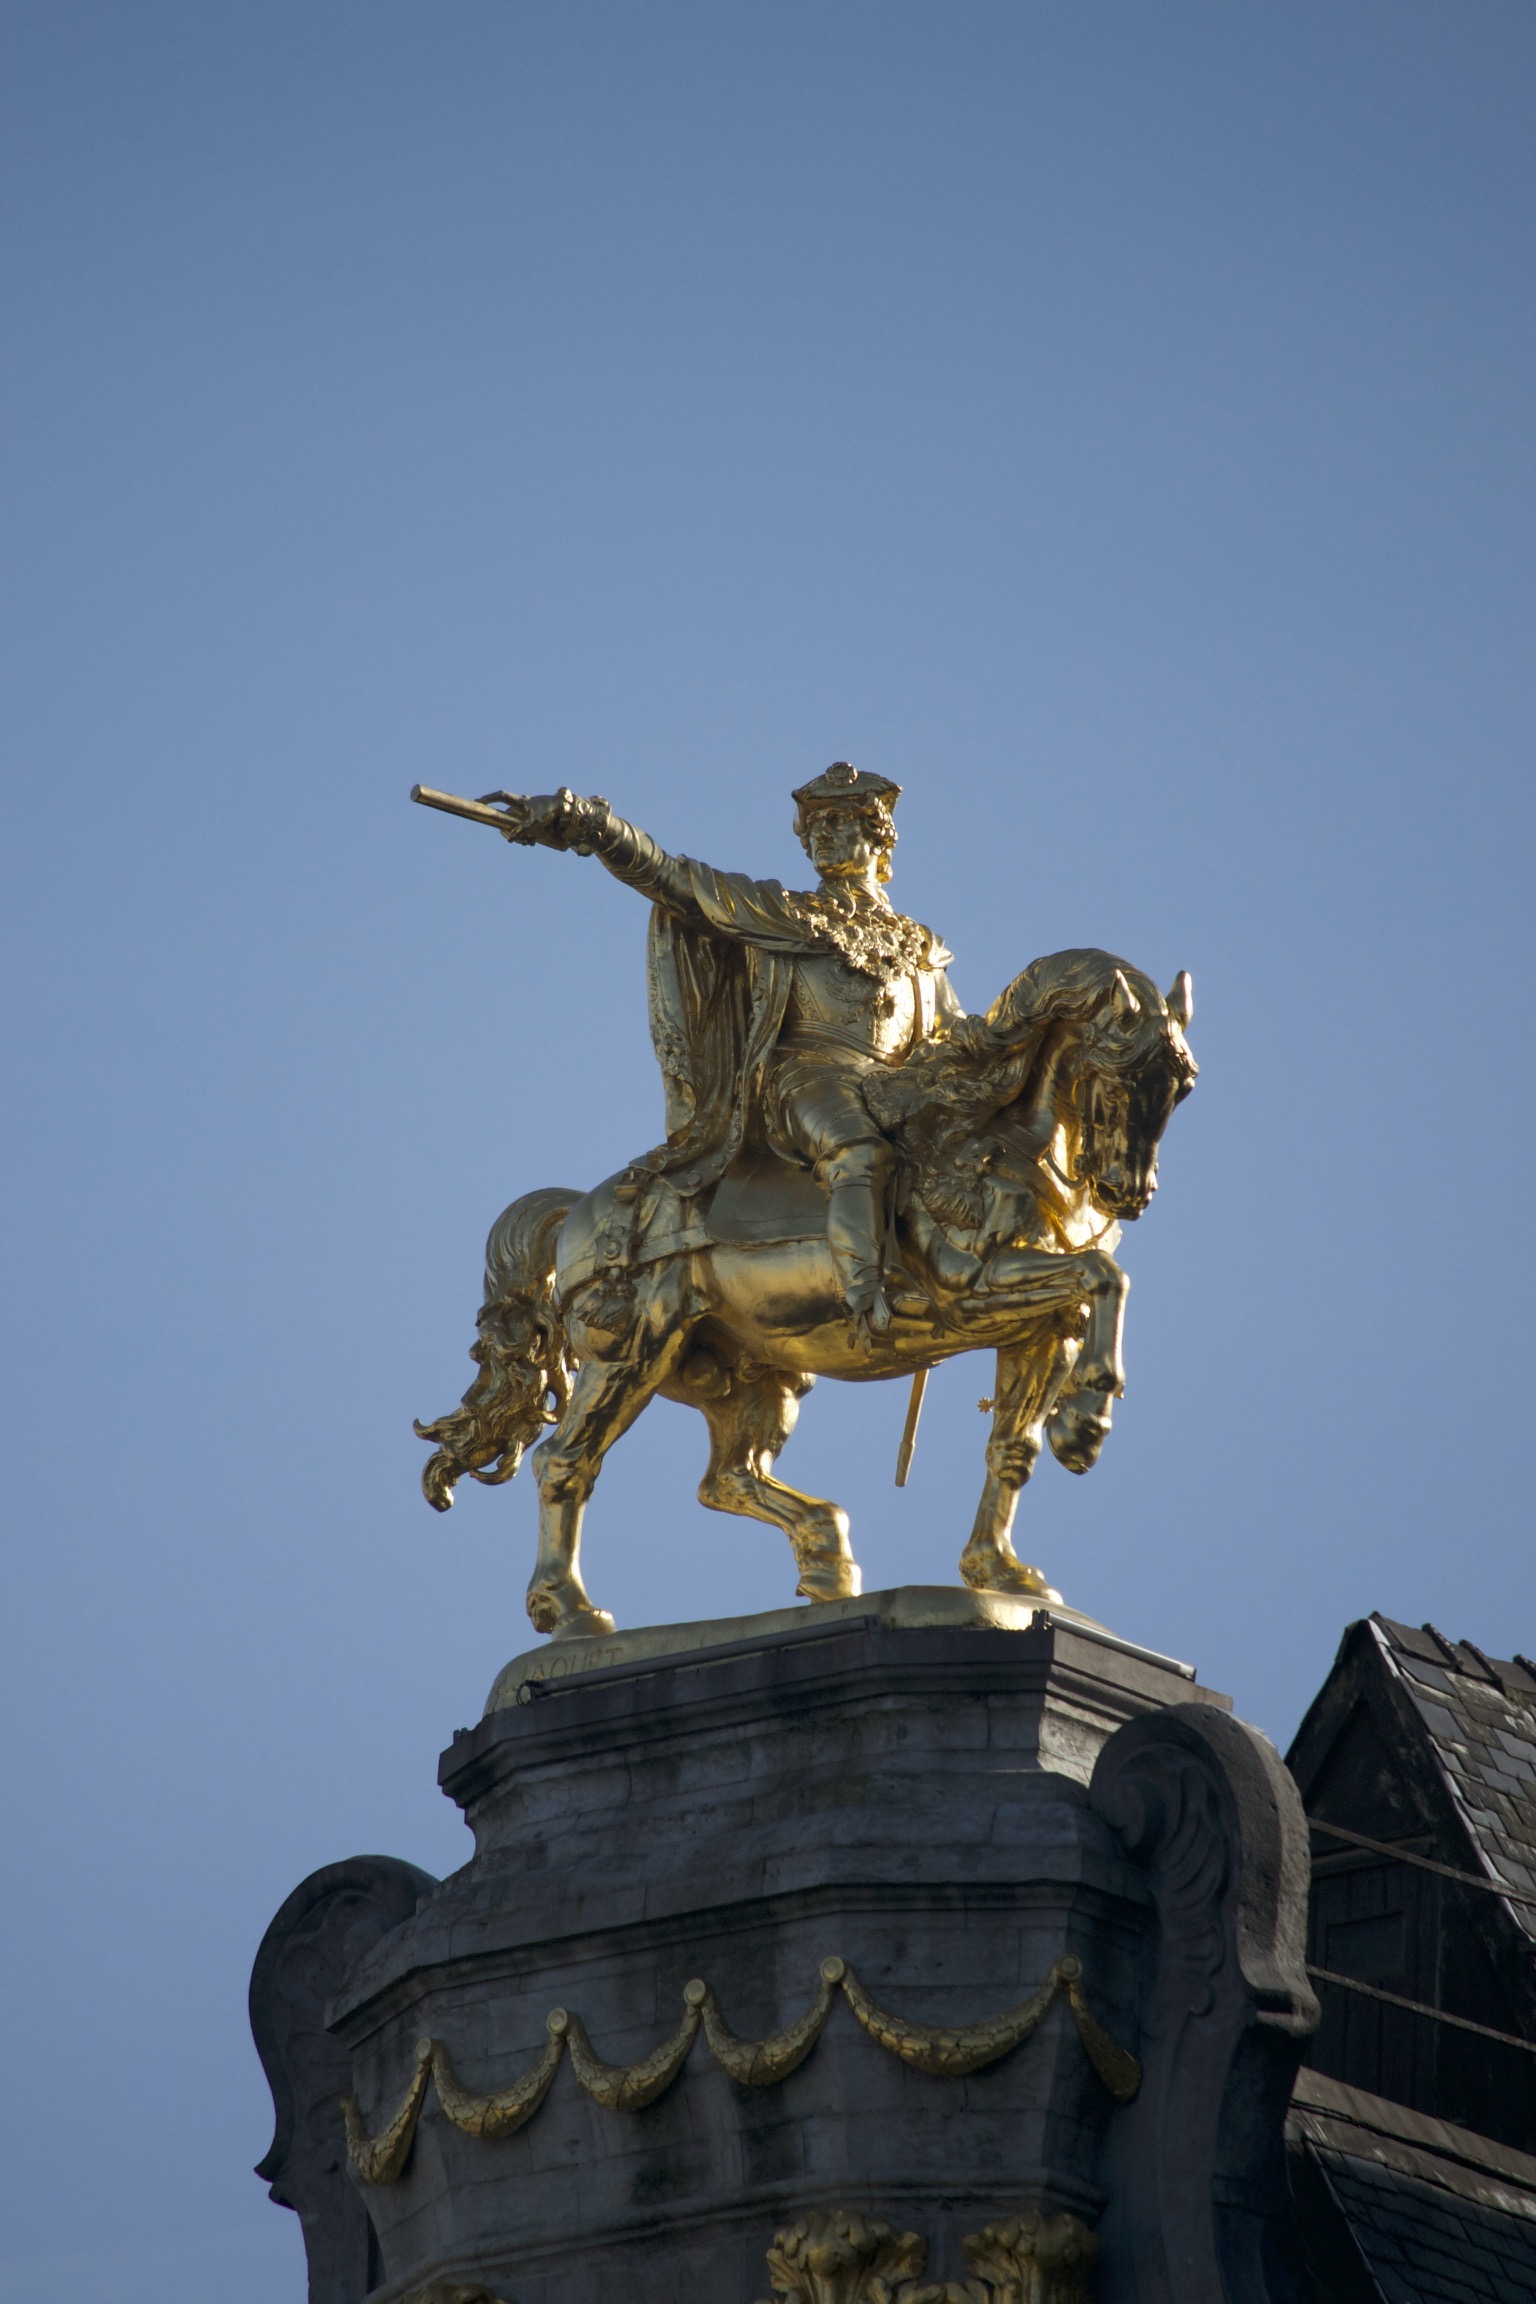 A golden statue of a man on a horse.